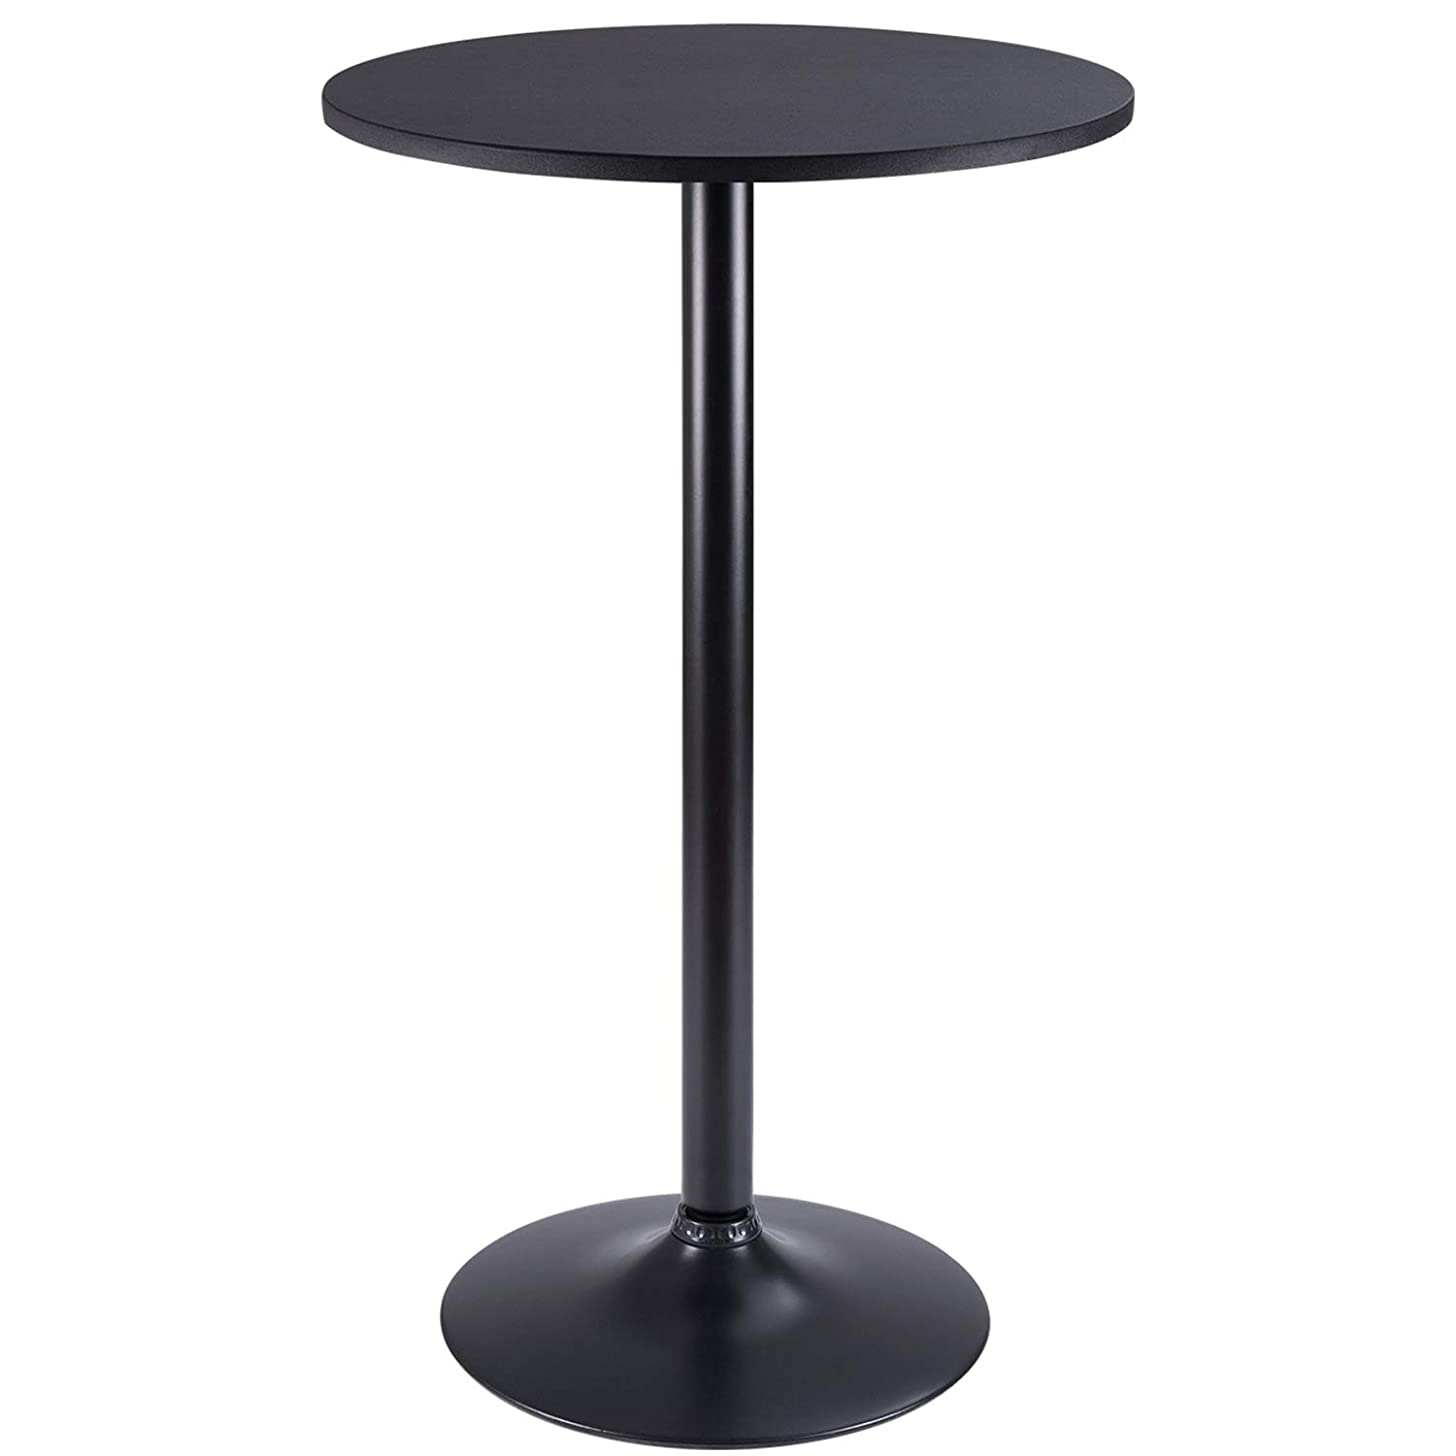 Furmax Bistro Pub Table Round Bar Height Cocktail Table Metal Base MDF Top Obsidian Table with Black Leg 23.8-Inch Top, 39.5-Inch Height(Black)